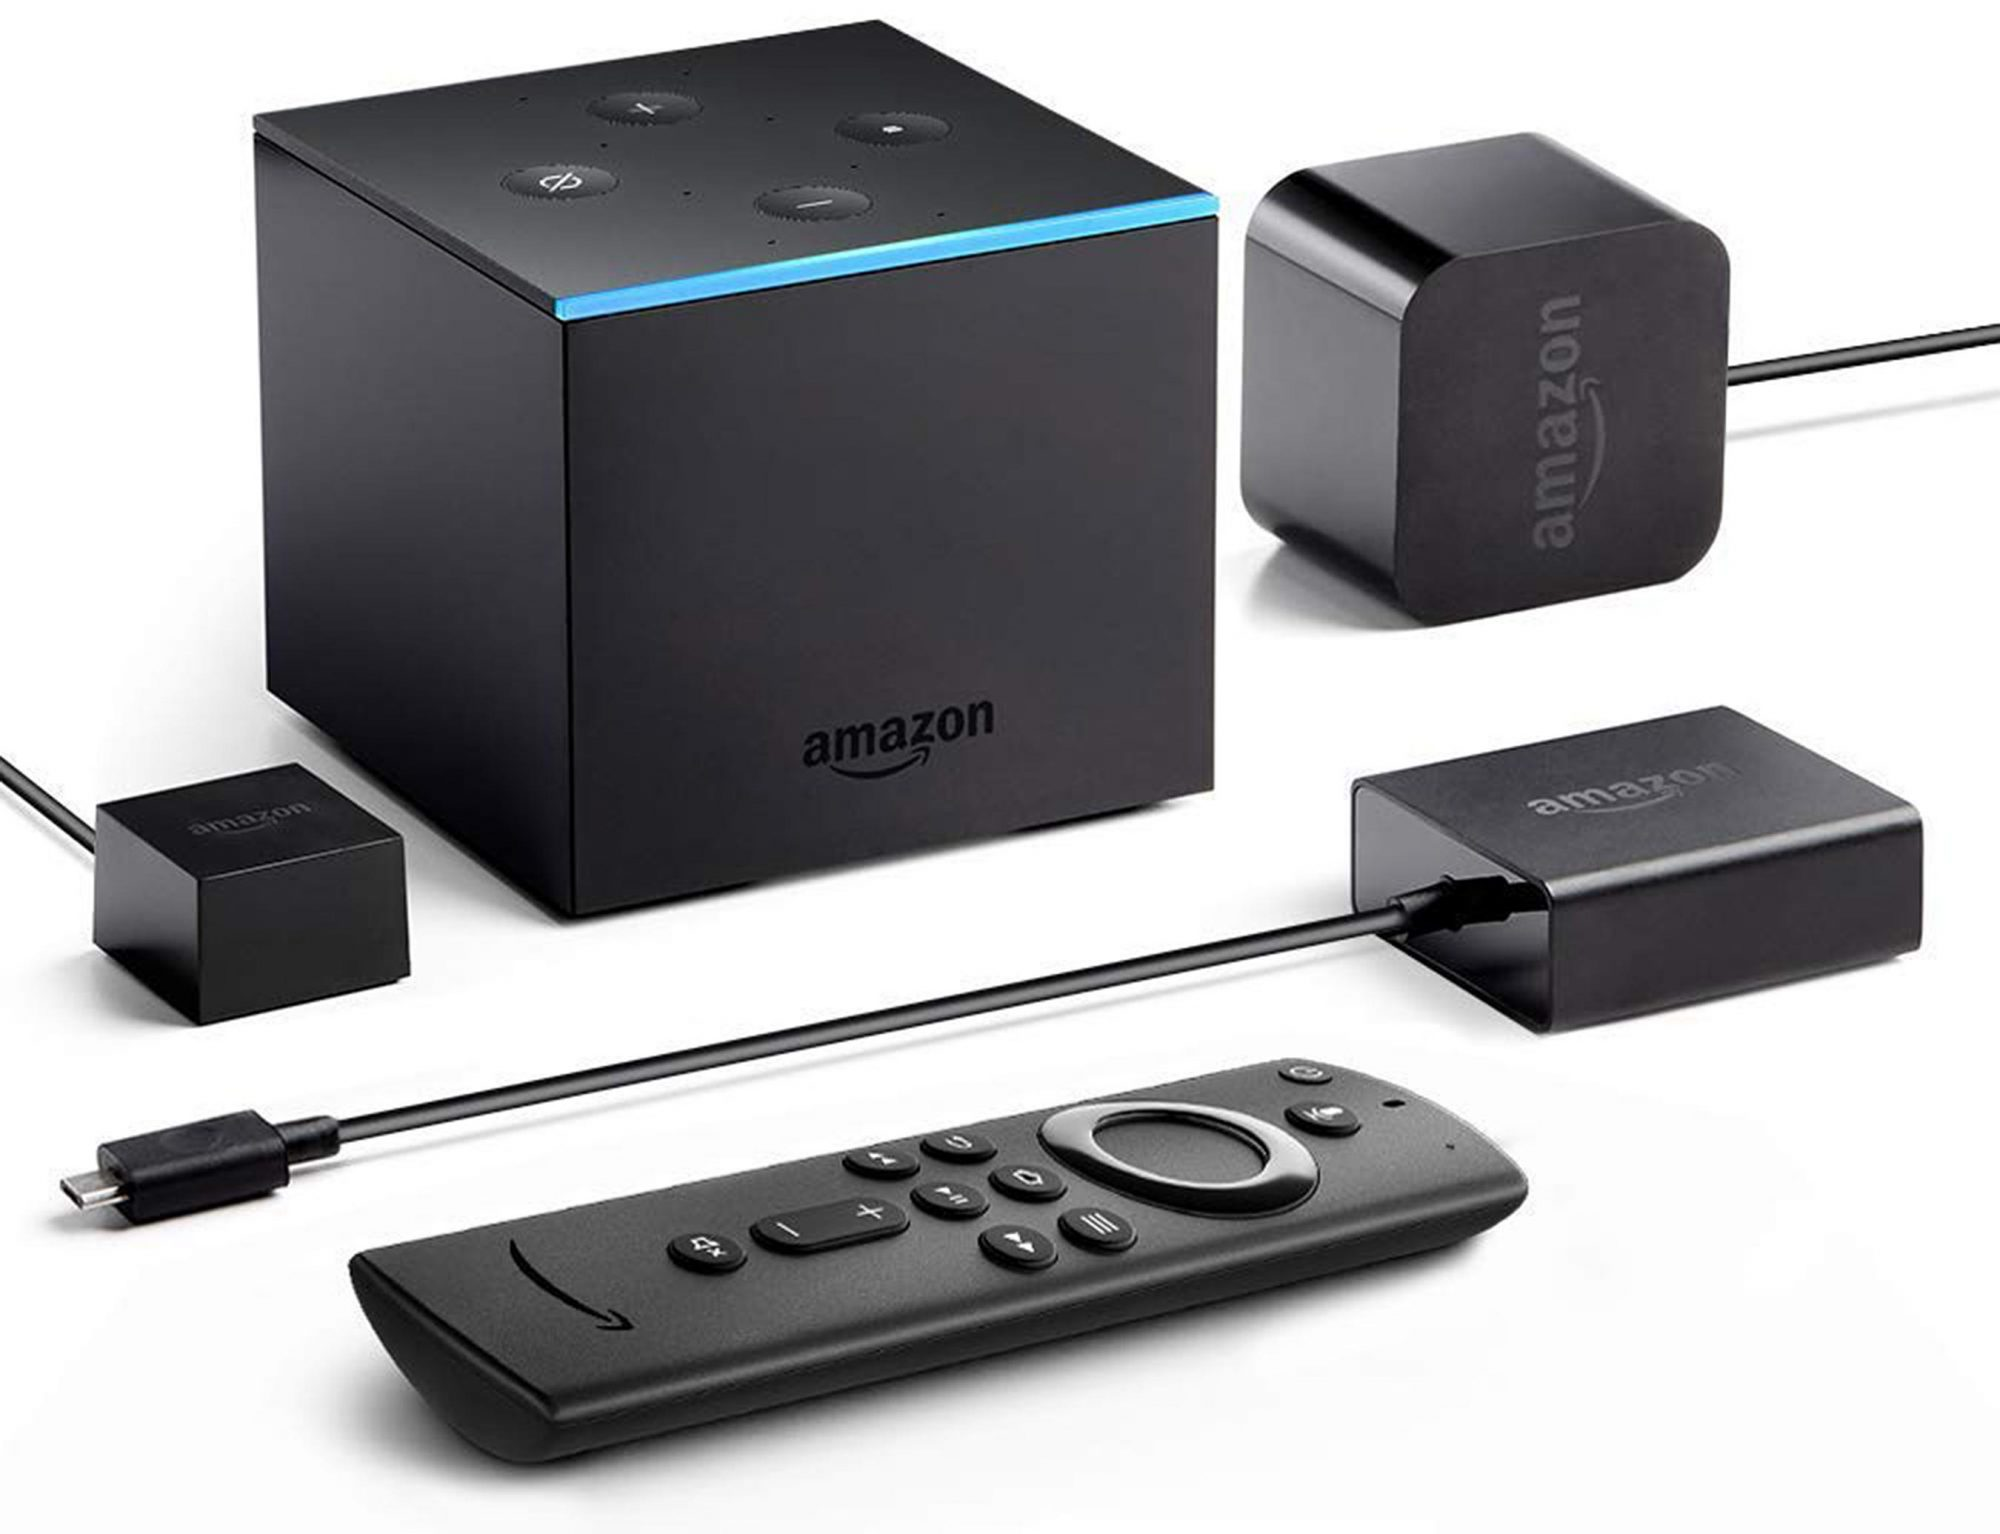 New Fire TV Cube Streaming Media Player